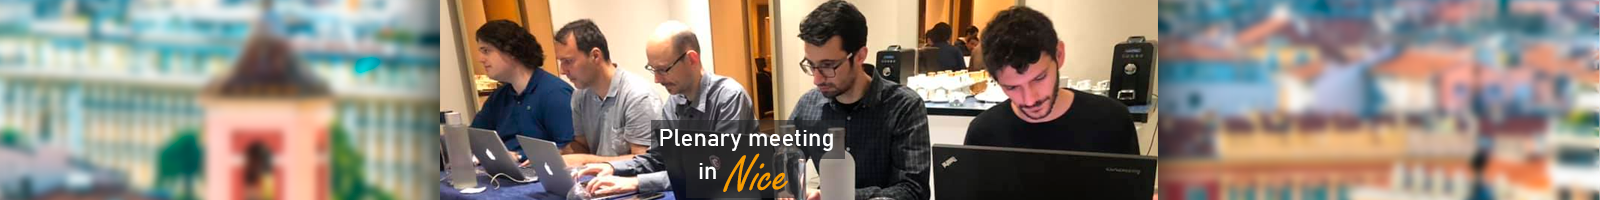 Plenary meeting in Nice